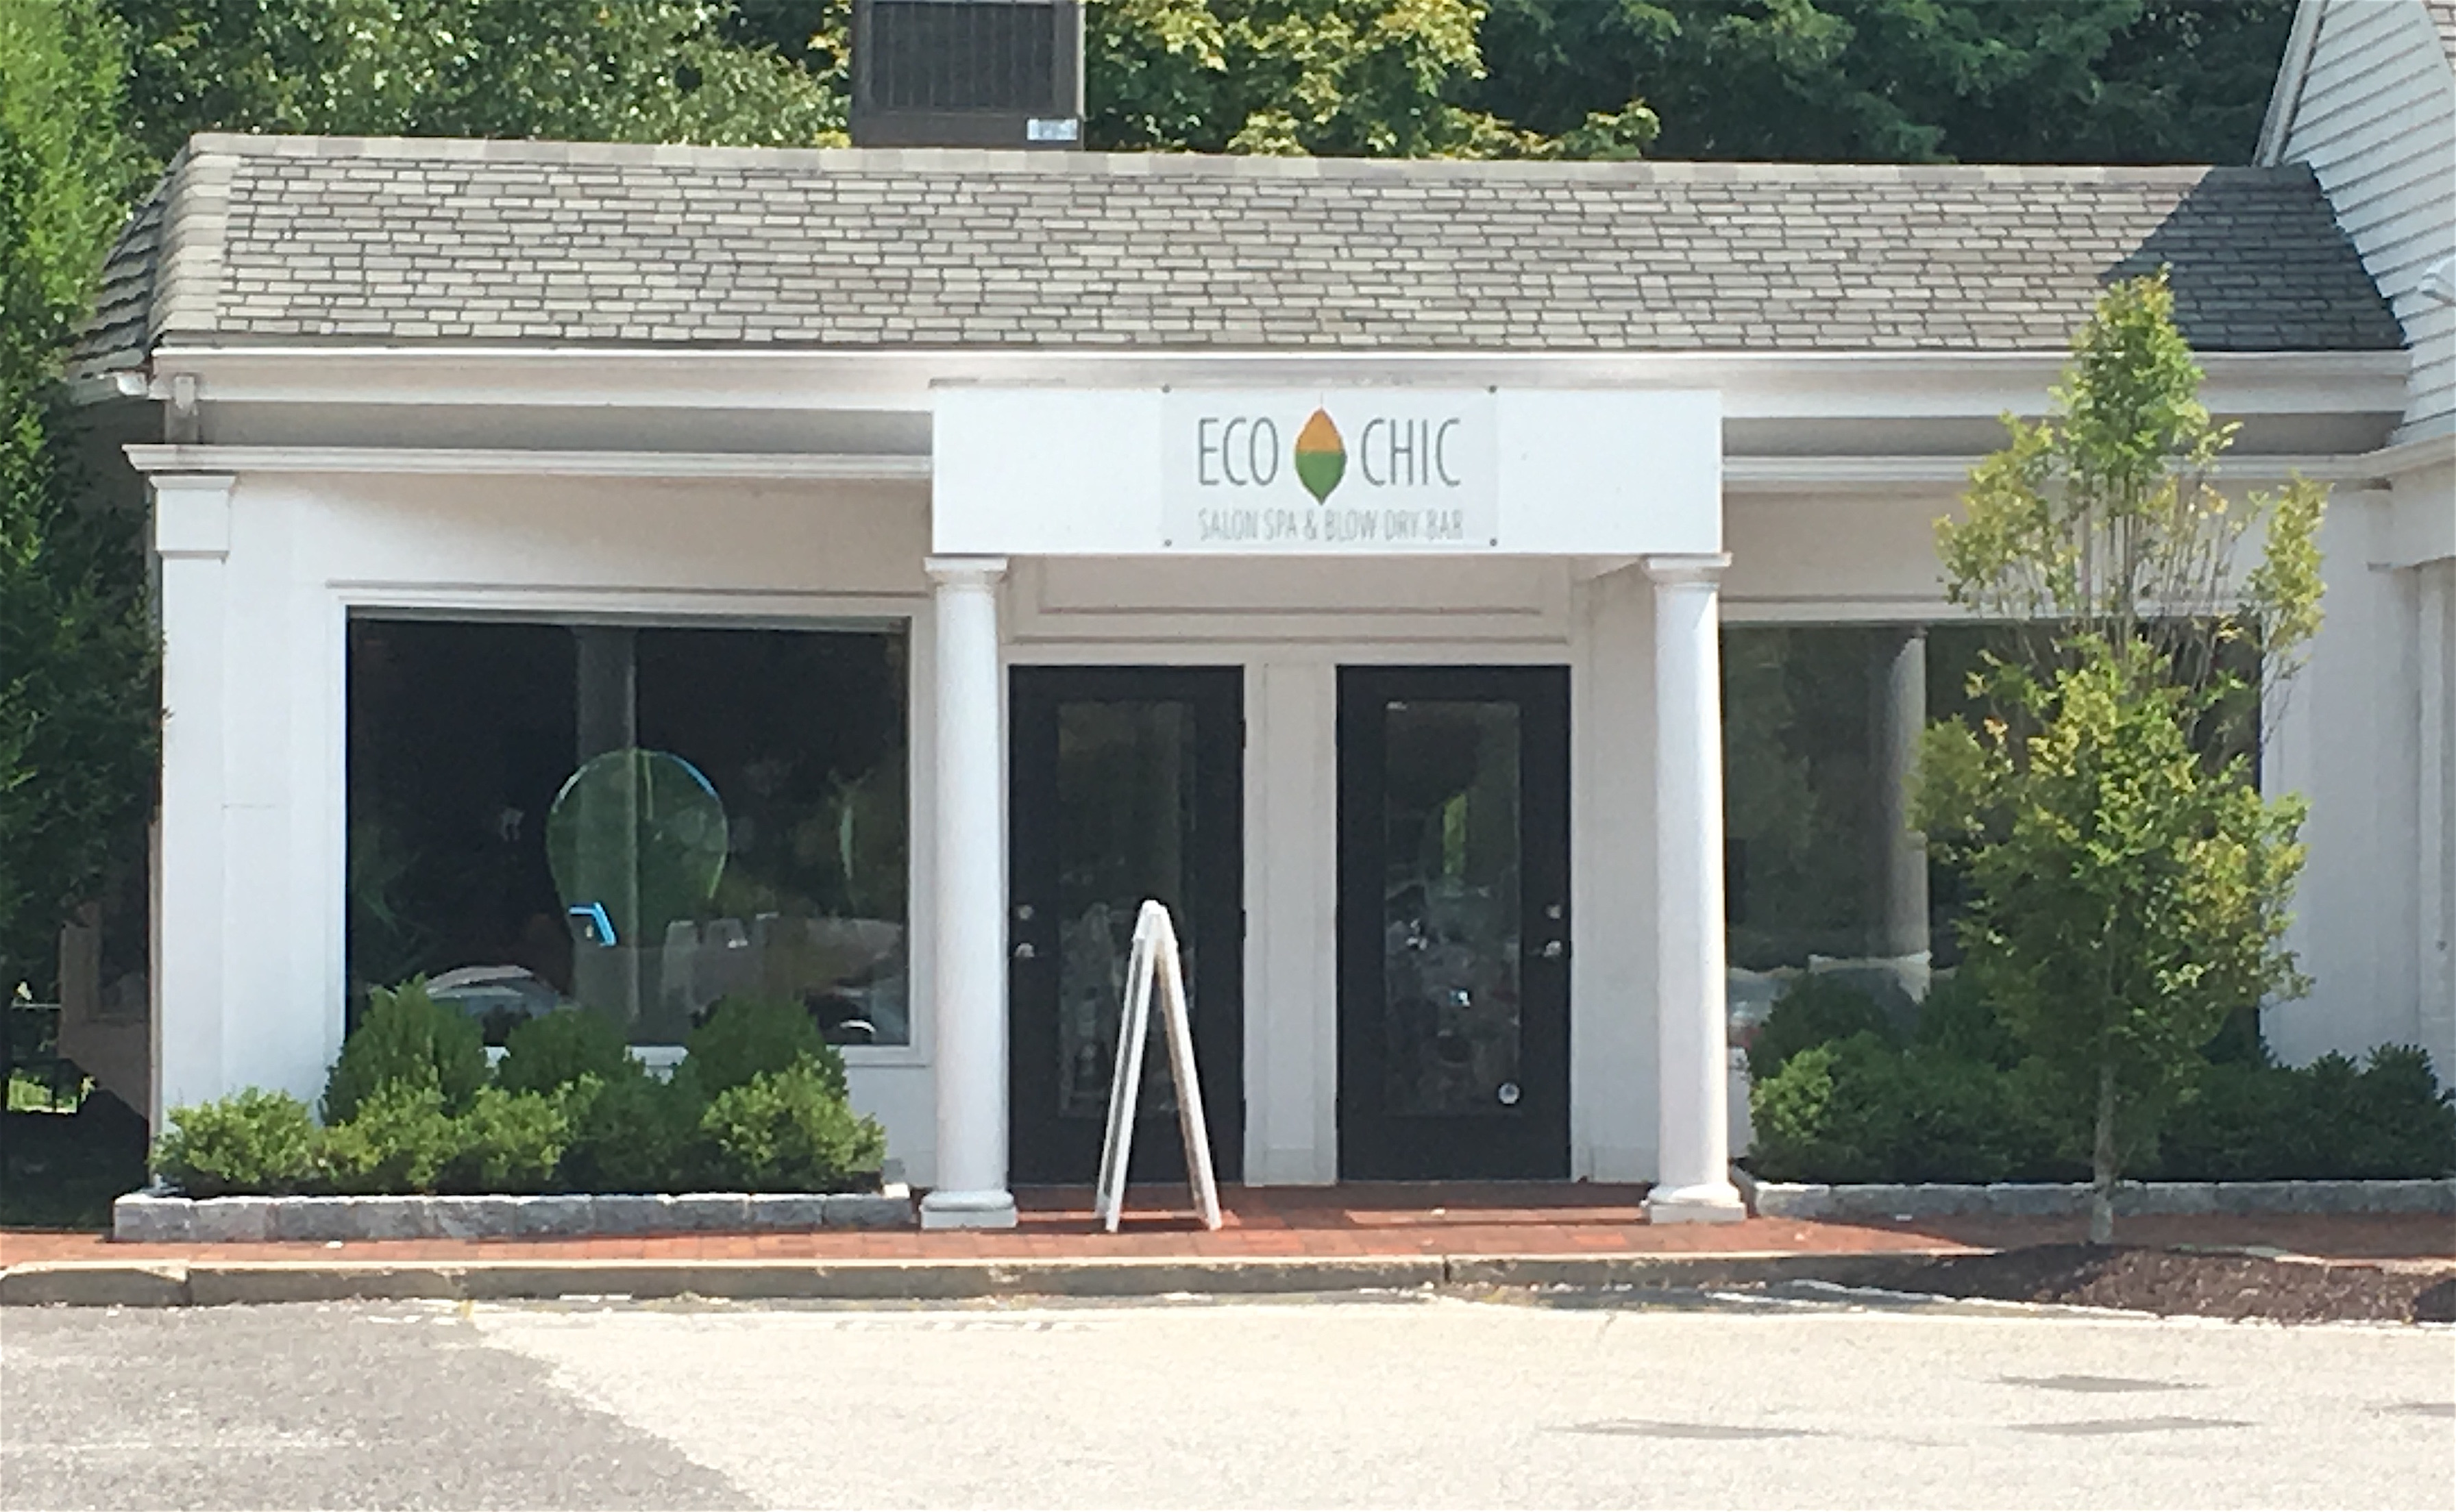 Salon Chic Wilton Welcomes Eco Chic Salon And Blow Dry Bar Good Morning Wilton